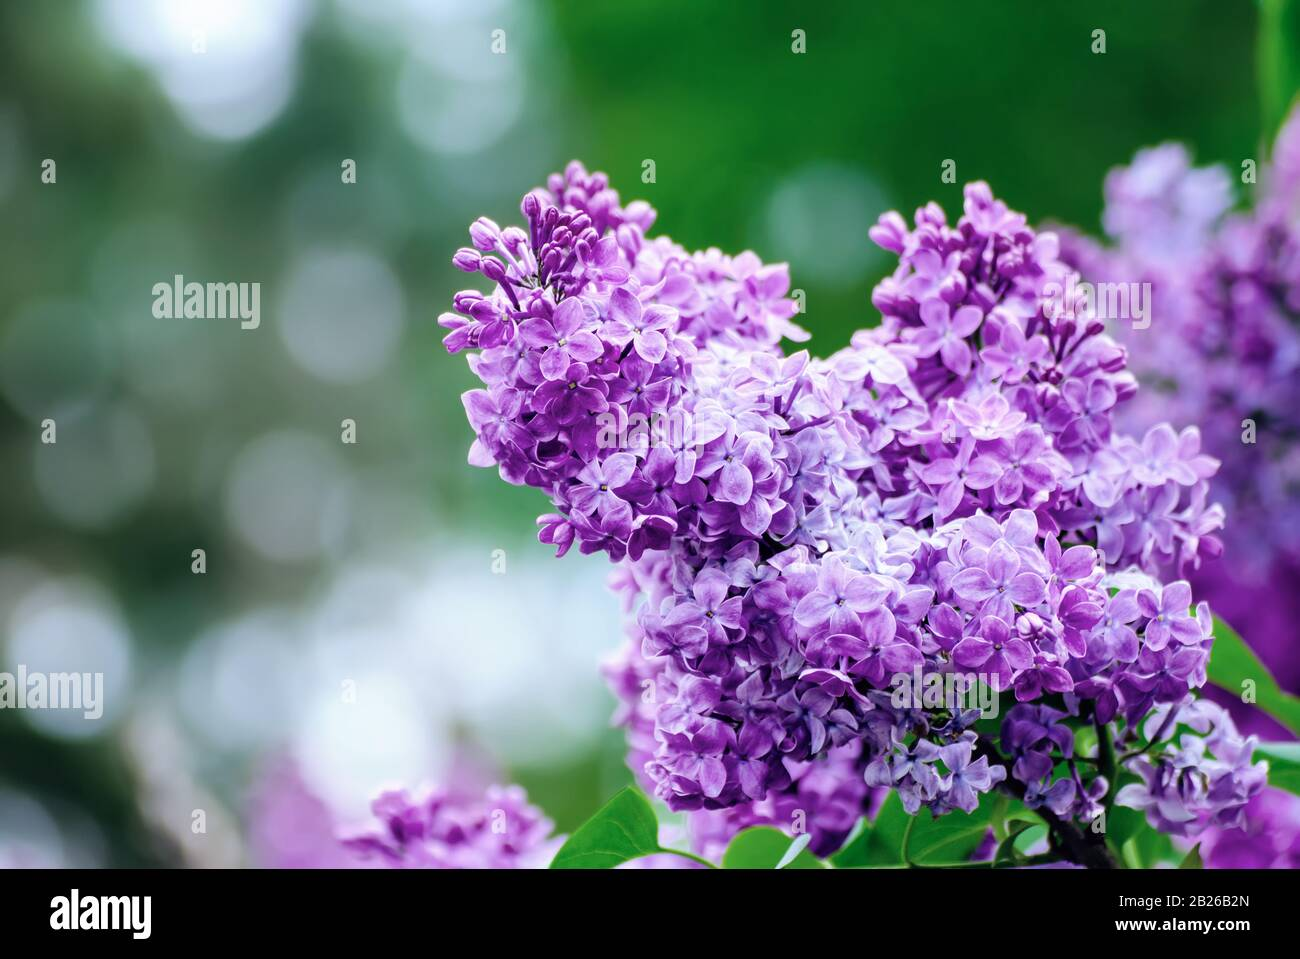 Branch Of Lilac Flowers With Green Leaves Floral Natural Seasonal